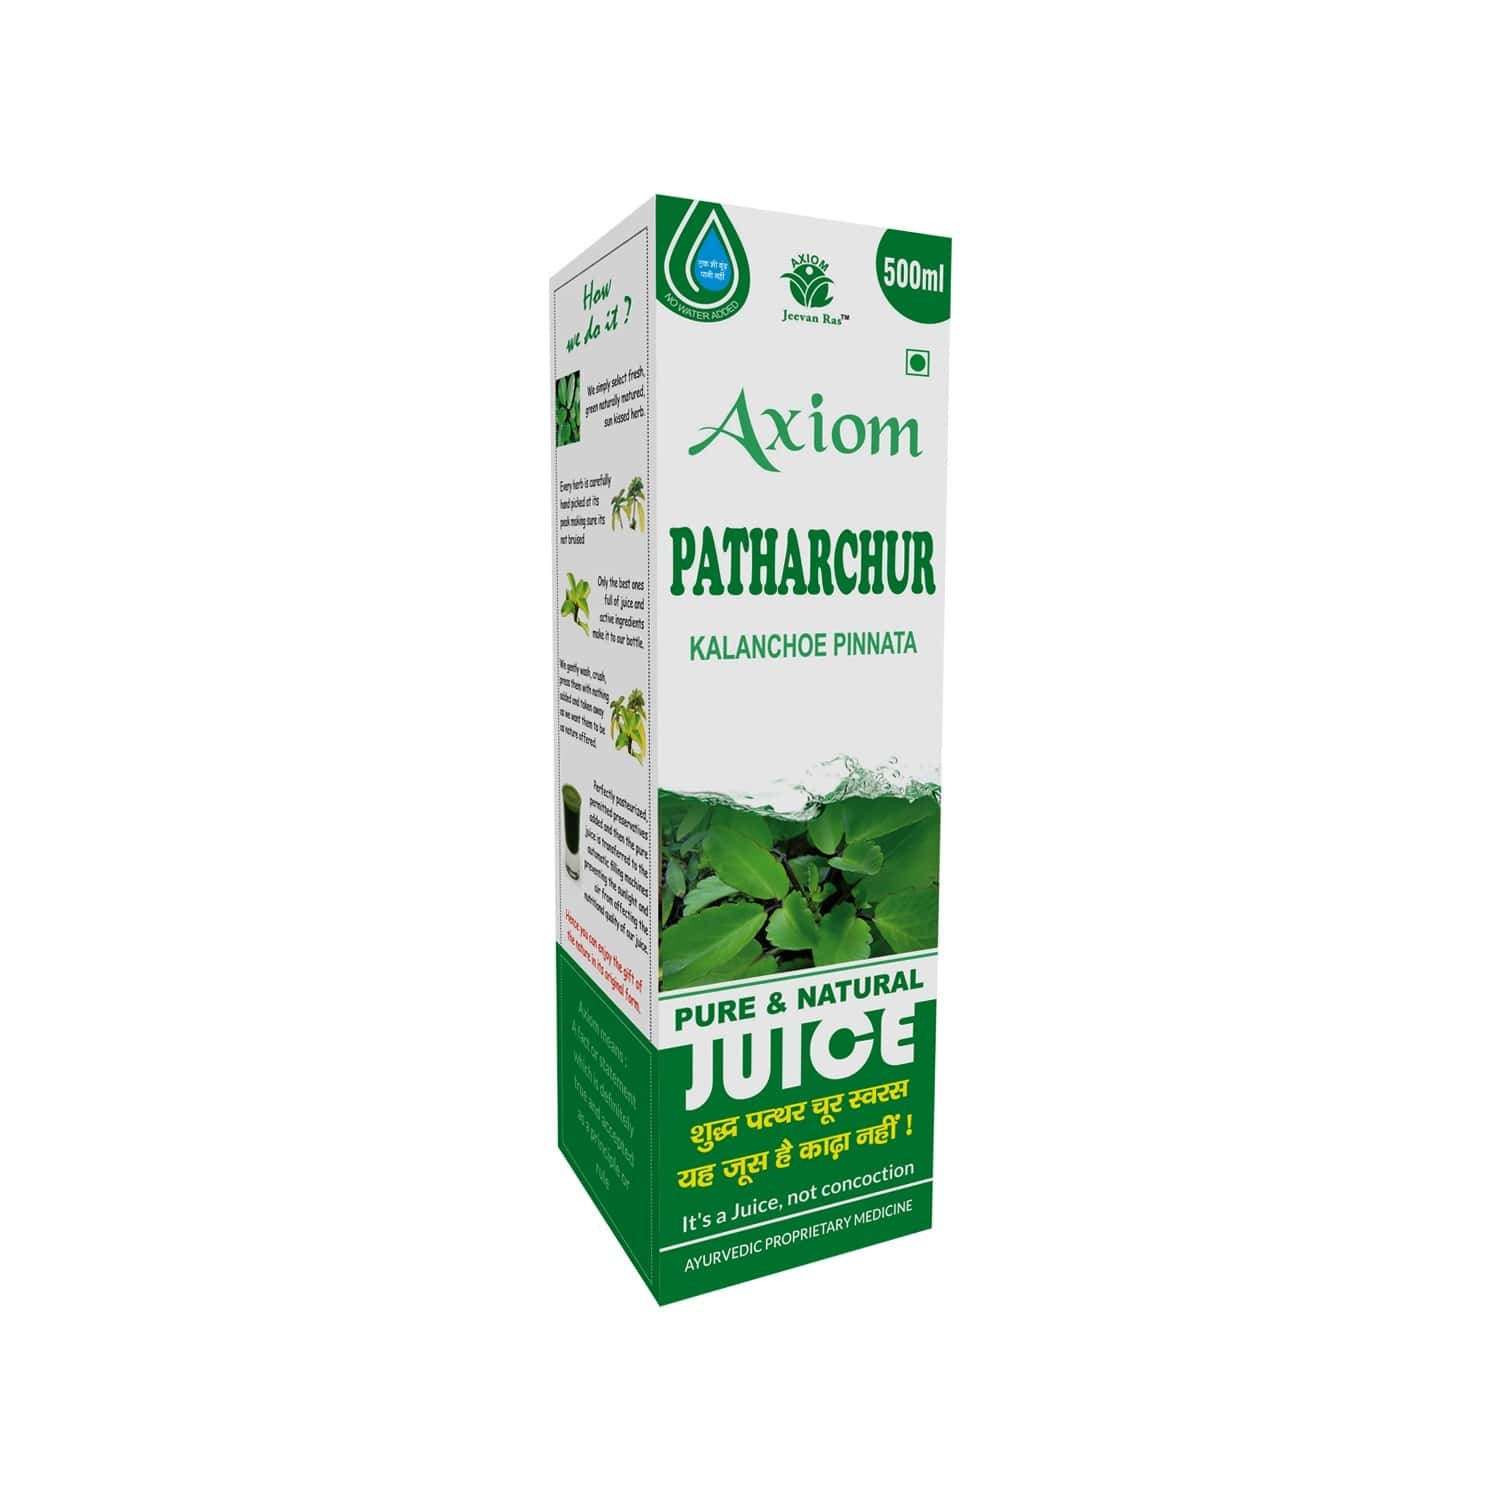 Axiom Jeevan Ras Patharchur Juice - 500ml